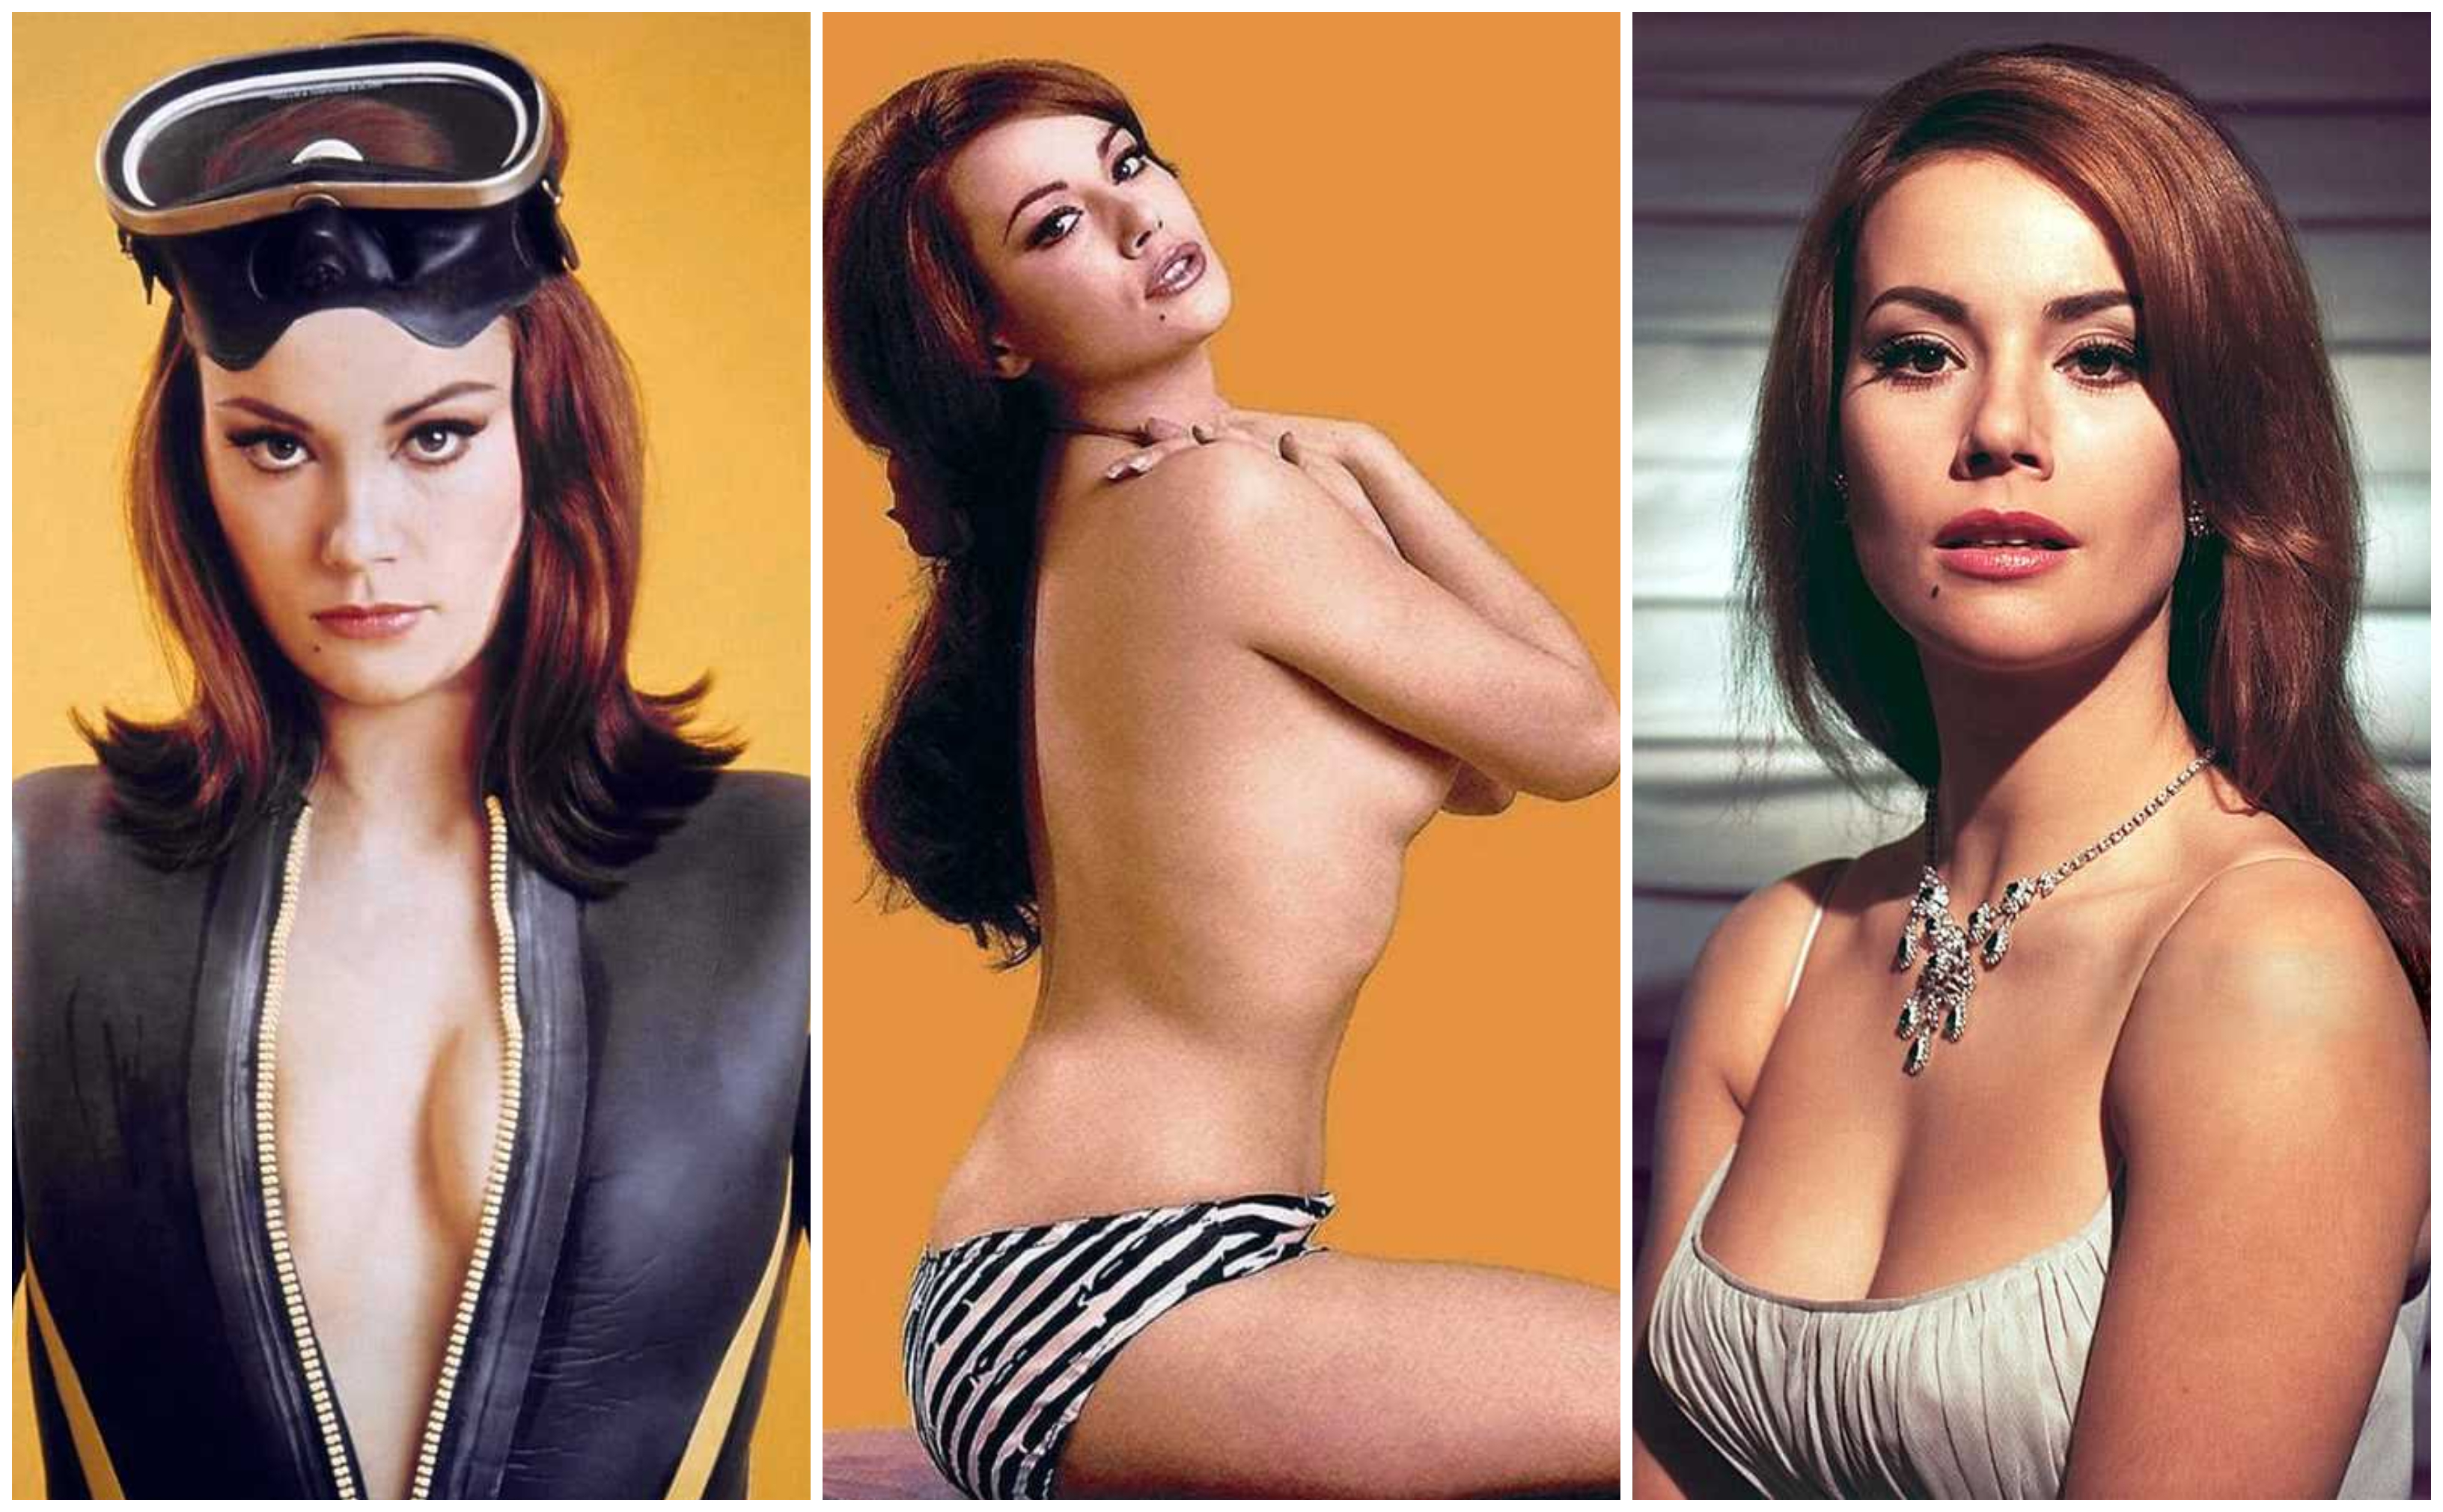 61 Sexy Claudine Auger Pictures Are An Appeal For Her Fans